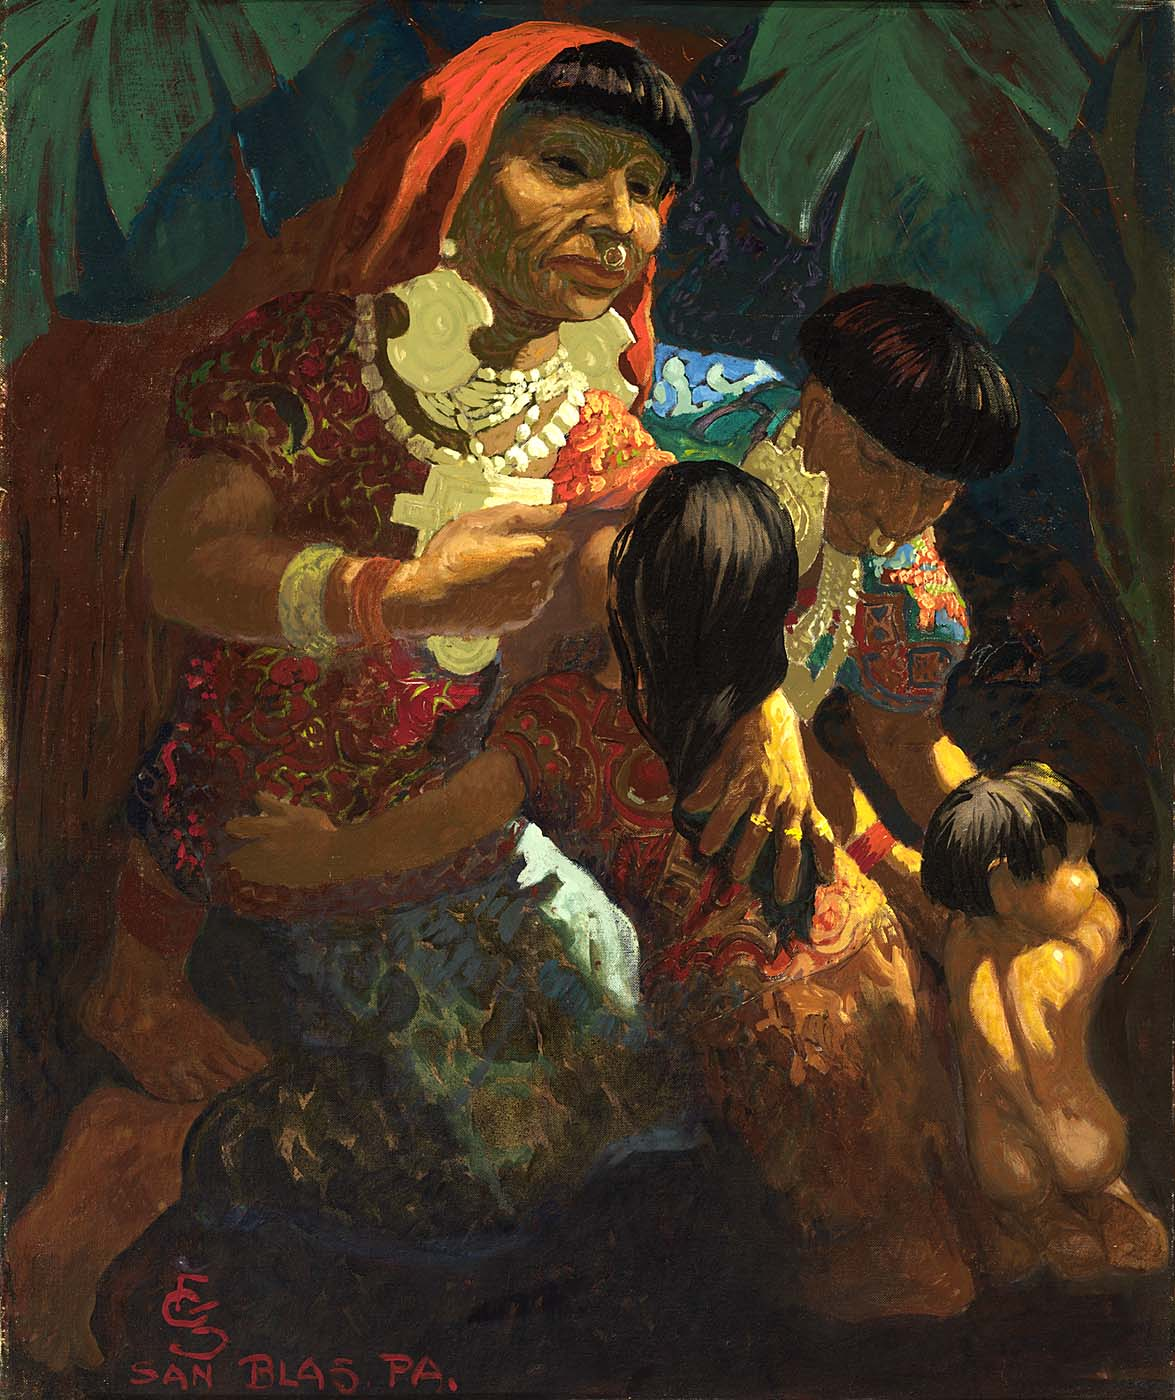 Indians of San Blas, Panama, by Carl Folke Sahlin, before 1963, oil on canvas mounted on paperboard,